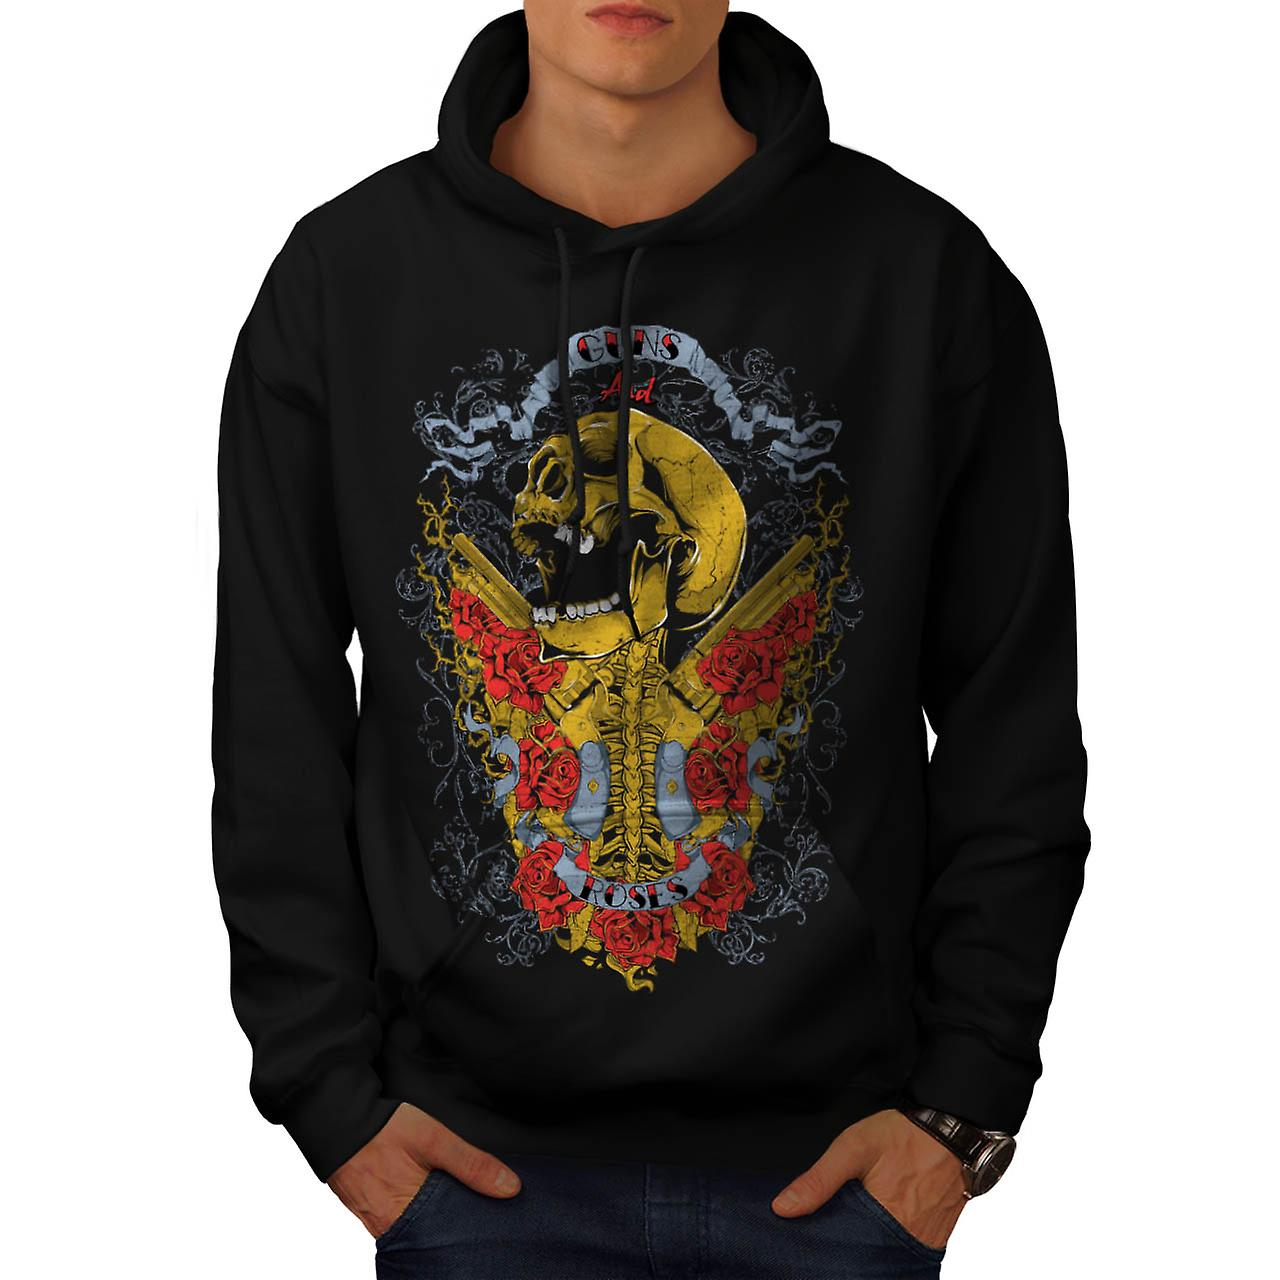 Guns And Roses Skull Men Black Hoodie | Wellcoda